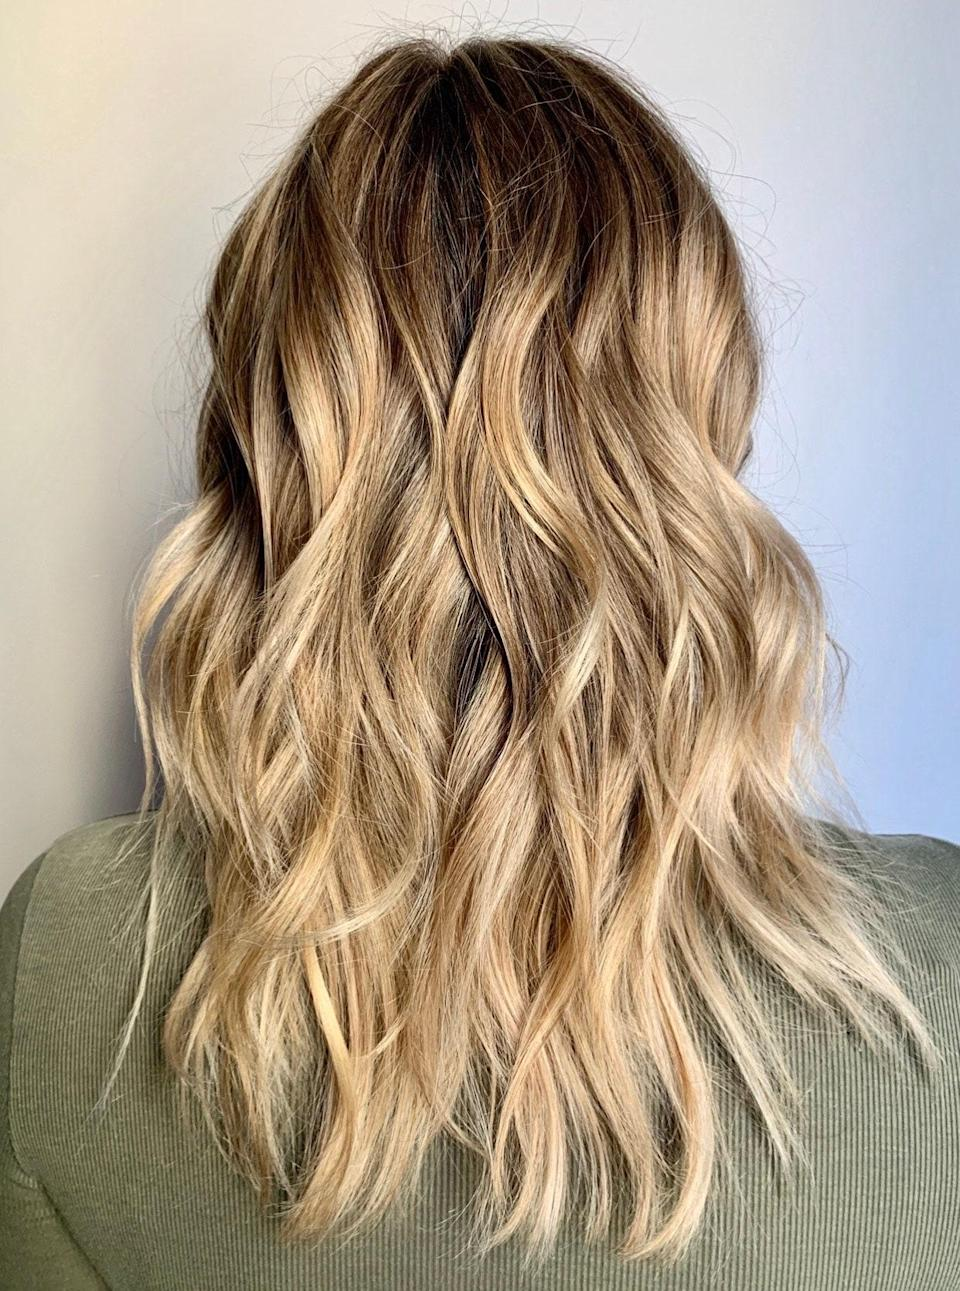 "Similar to bronde with a little more blend, Grummel recommends a light gold brunette shade for those who want to brighten up without a lot of commitment. ""A color like this you could get done twice a year,"" she says. ""Ask your stylist to focus the brightness on the ends, and keep warmth throughout."""